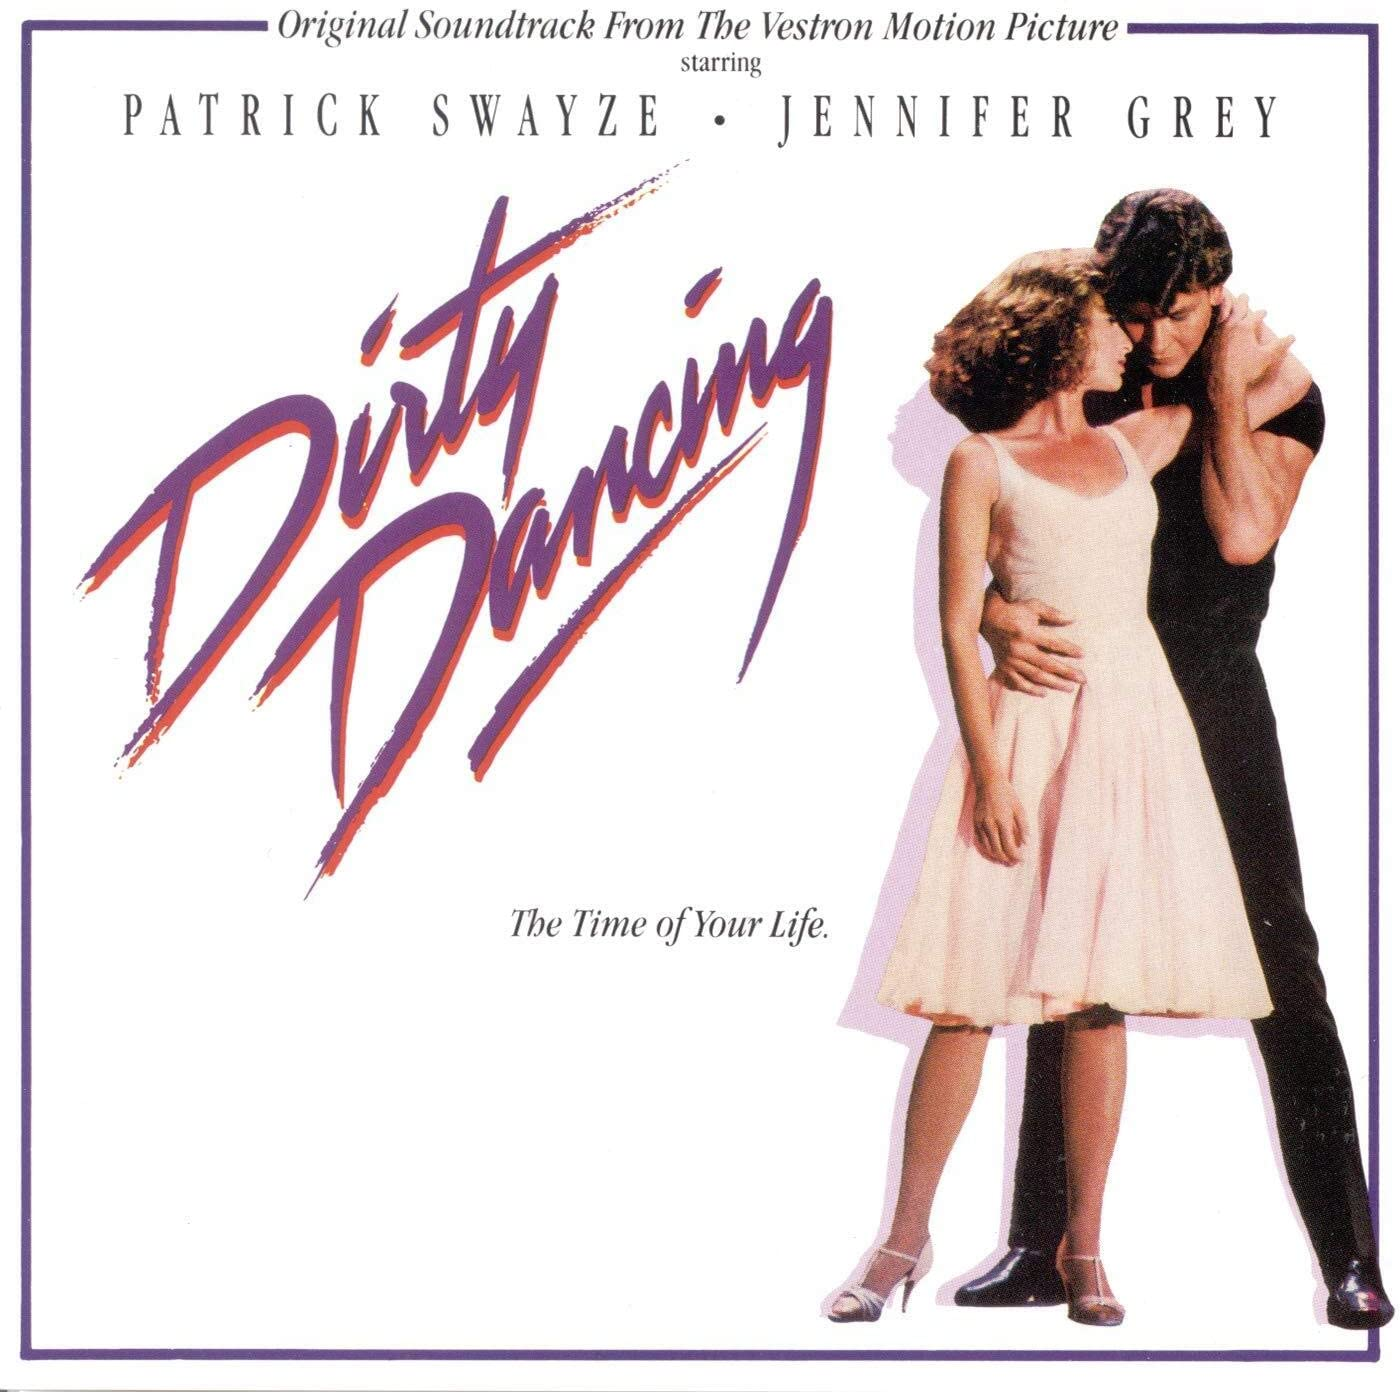 716D4PzAOLL. AC SL1400 30 Things You Probably Didn't Know About Dirty Dancing